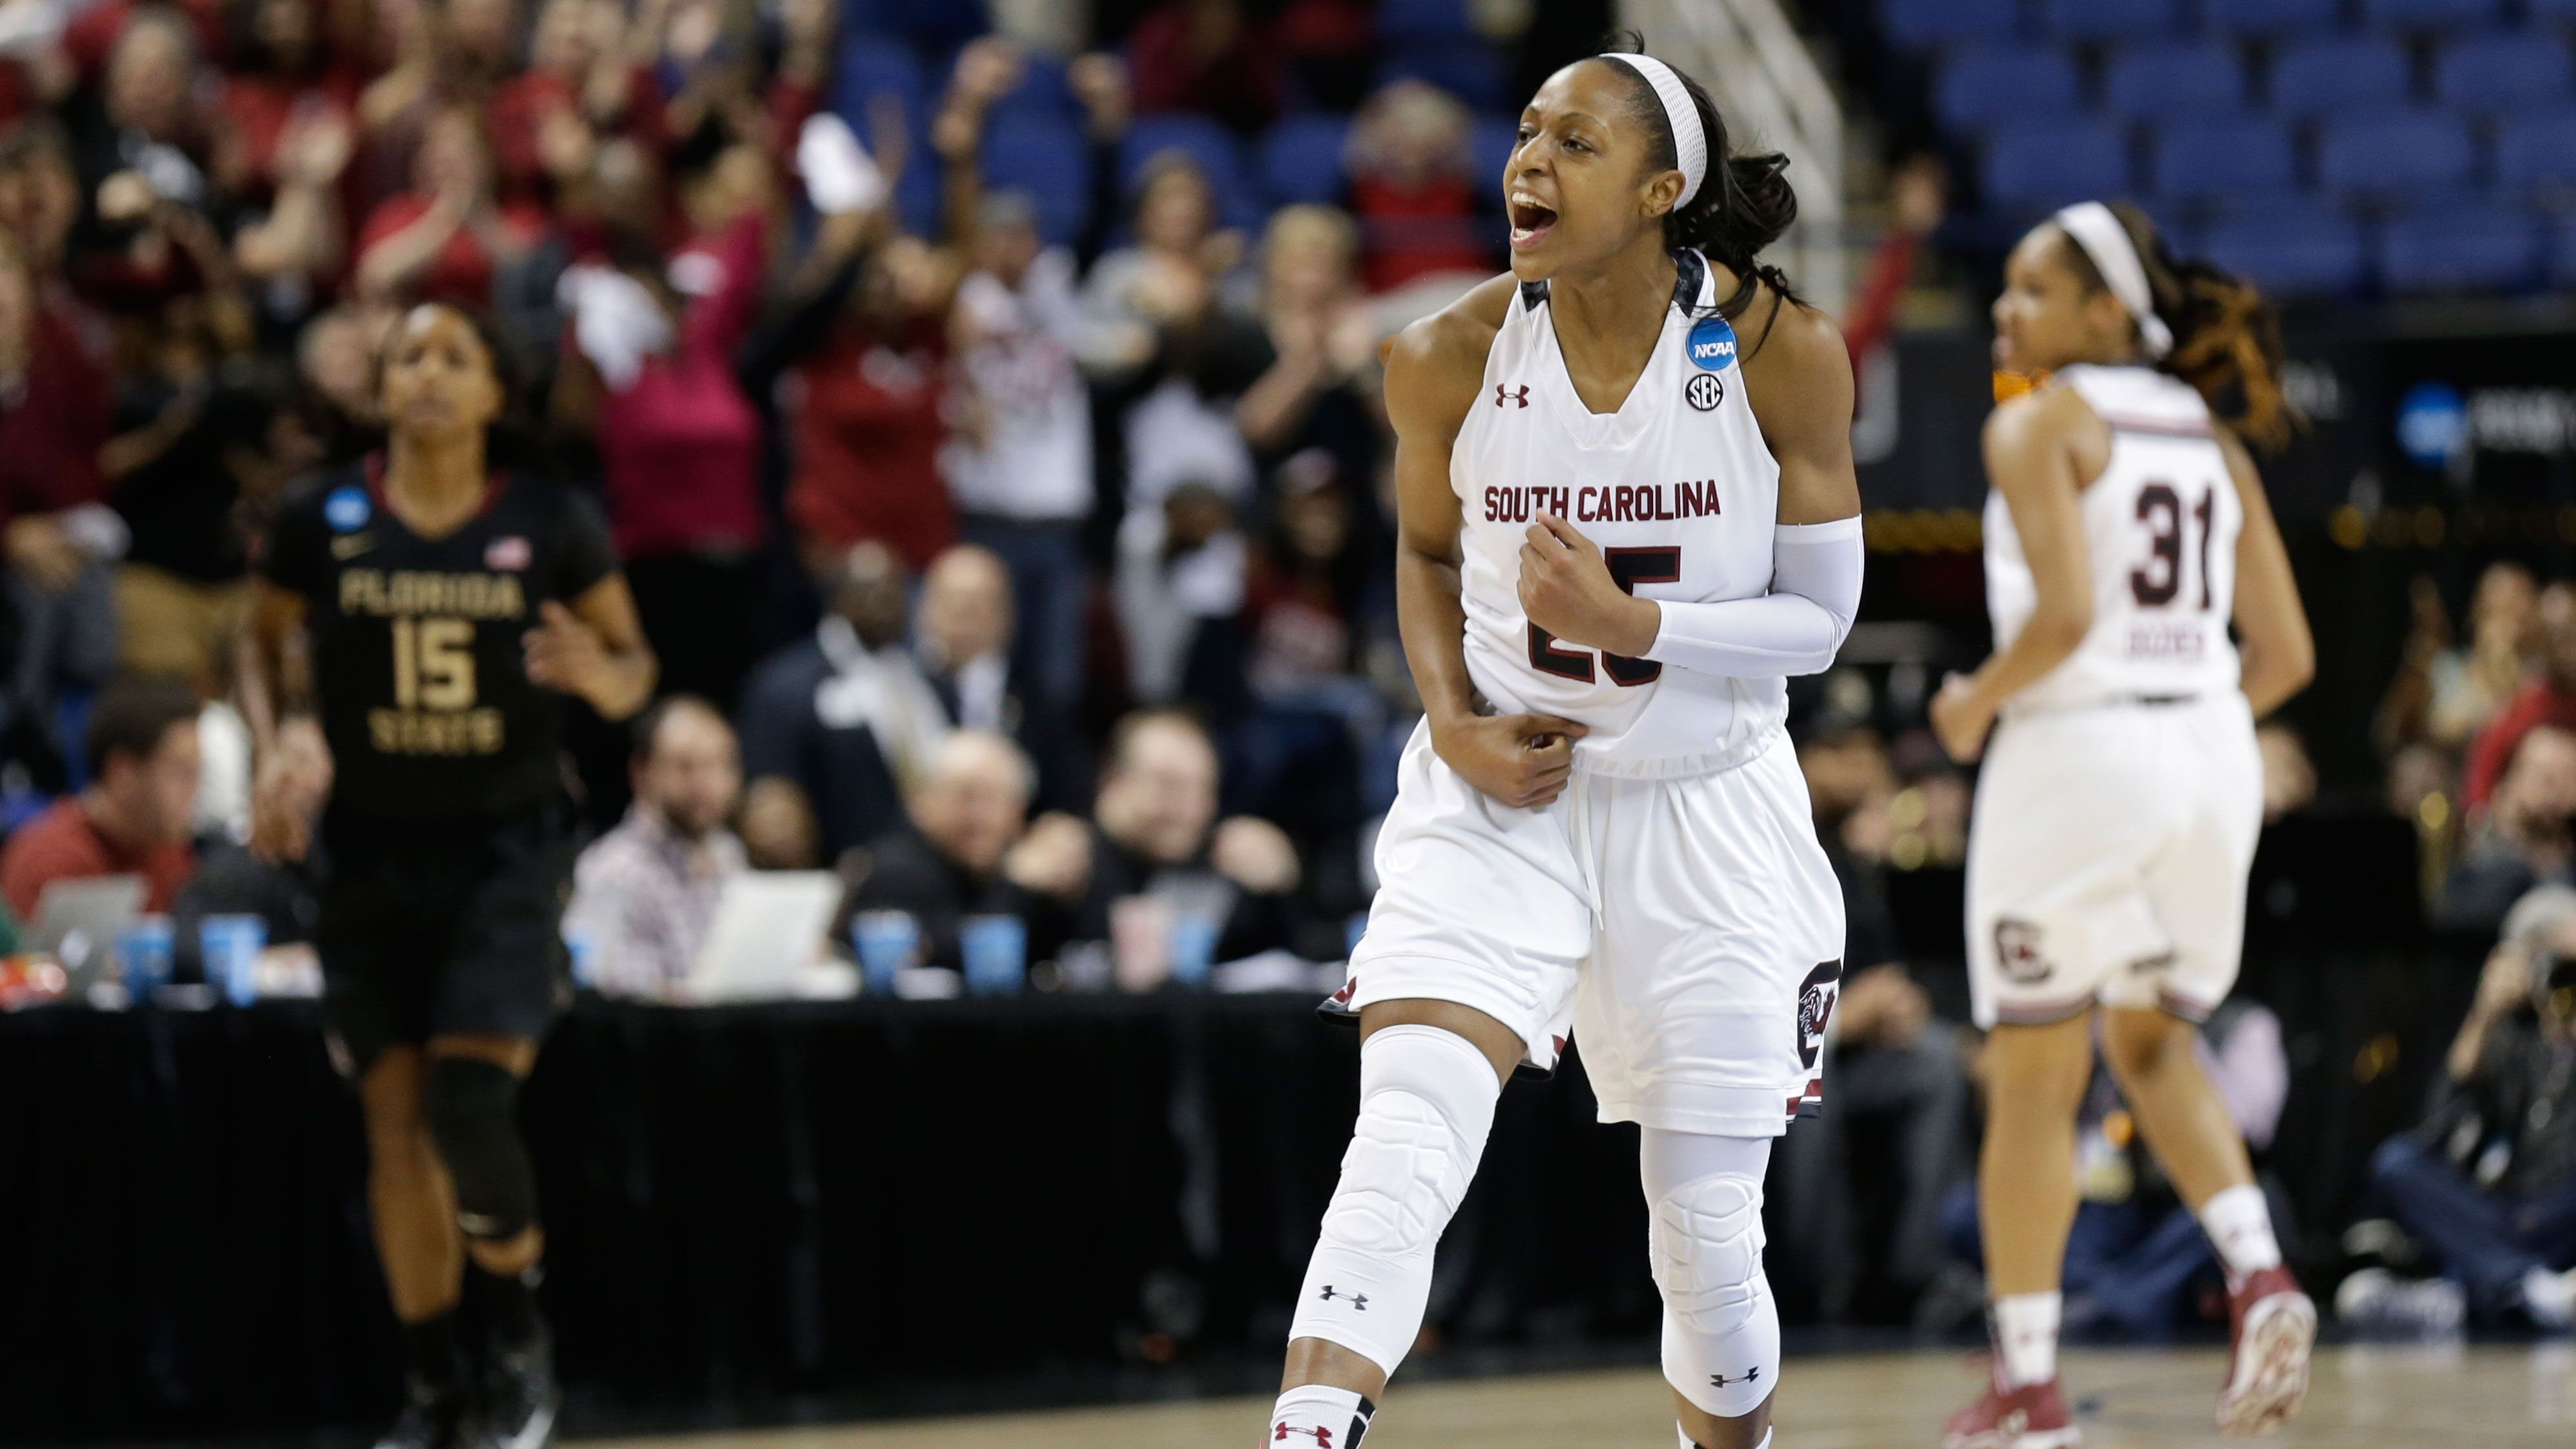 Mitchell named Wooden Award finalist